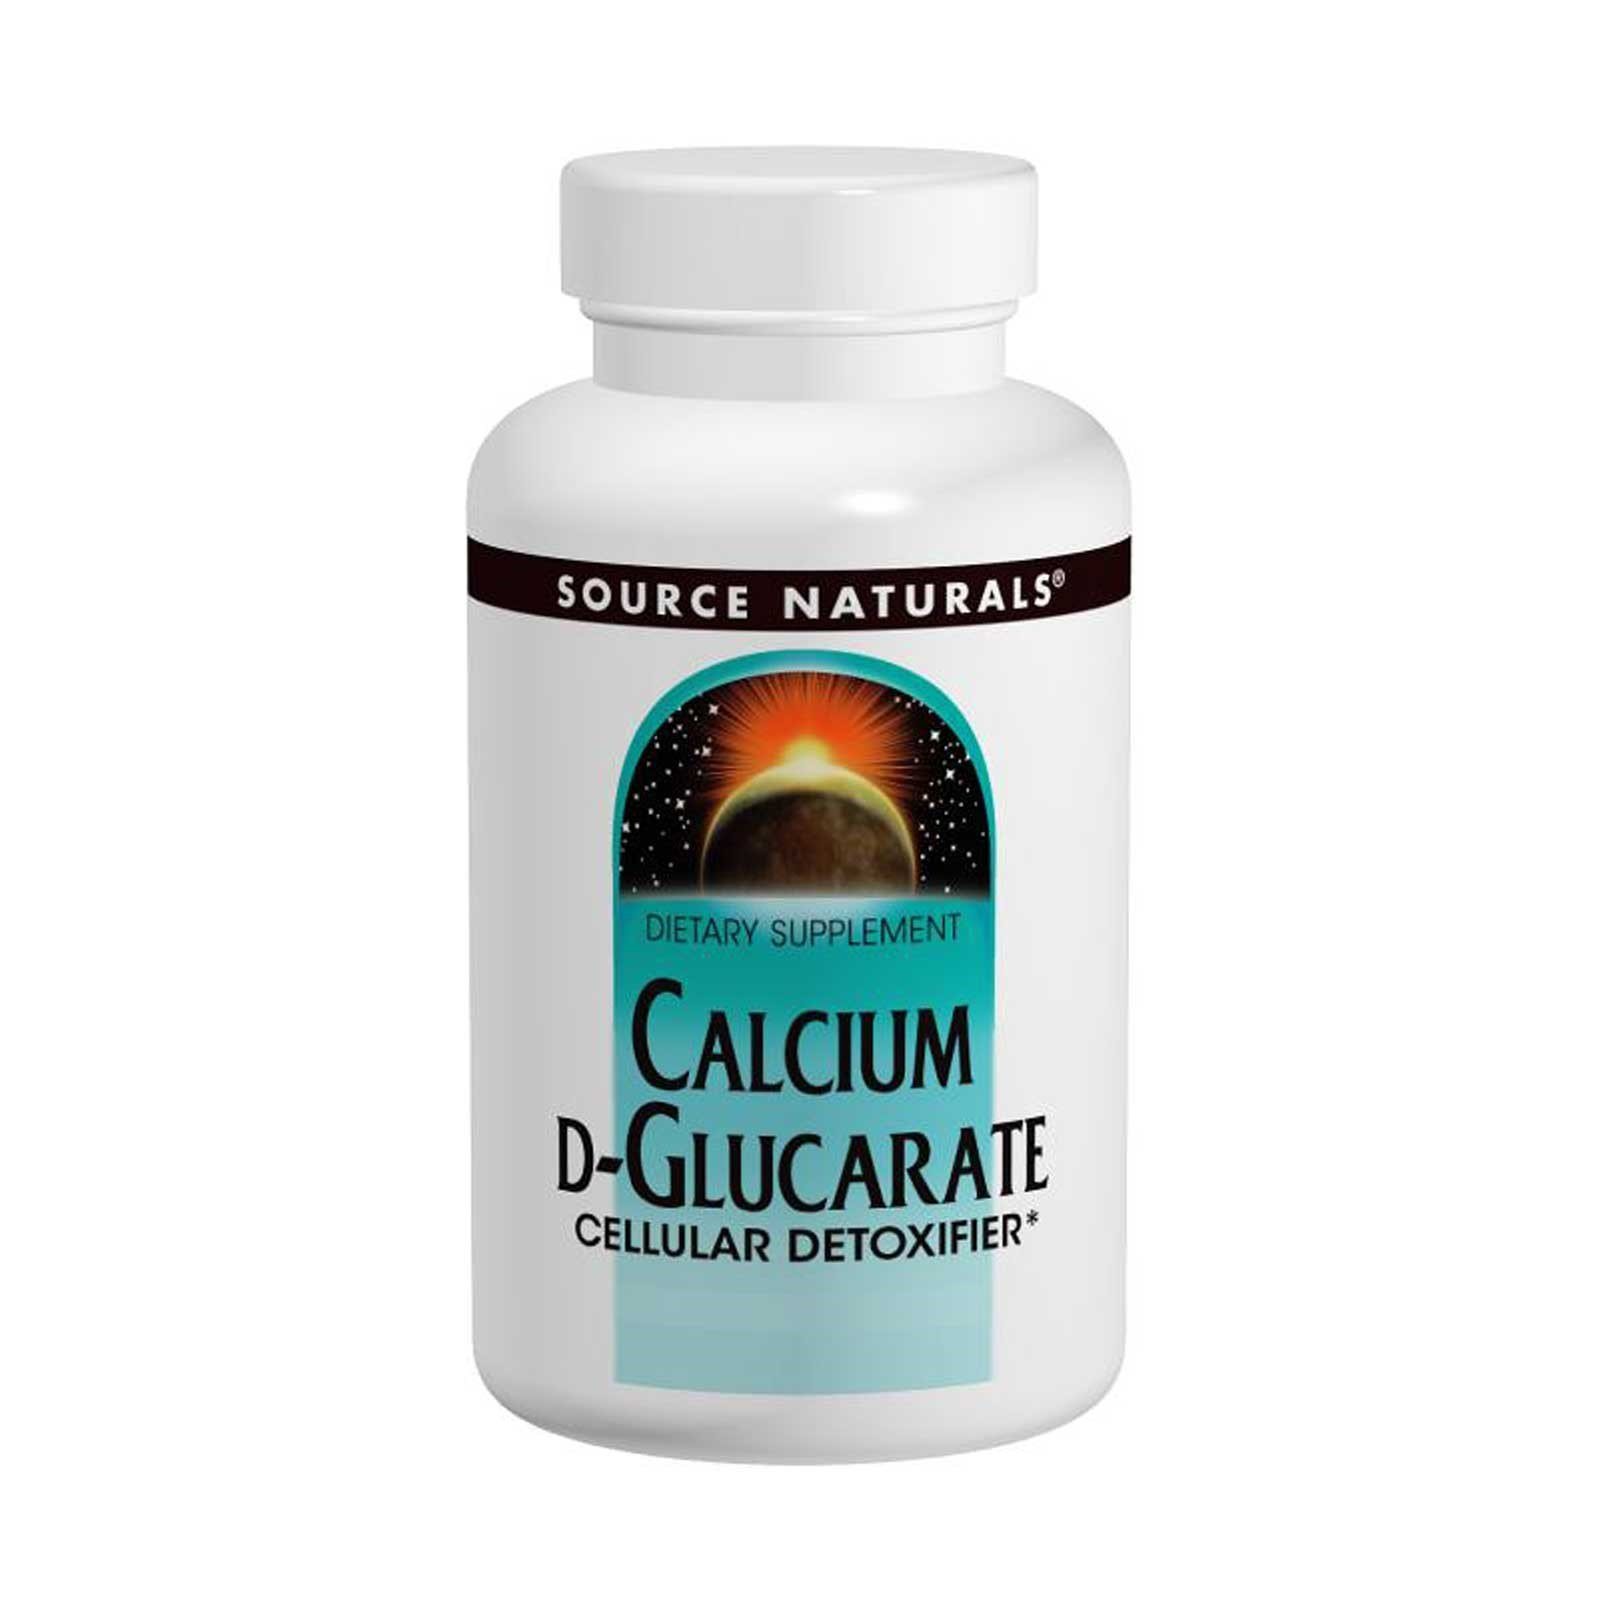 Source Naturals, Calcium D-Glucarate, 500 mg, 120 Tablets - 3PC